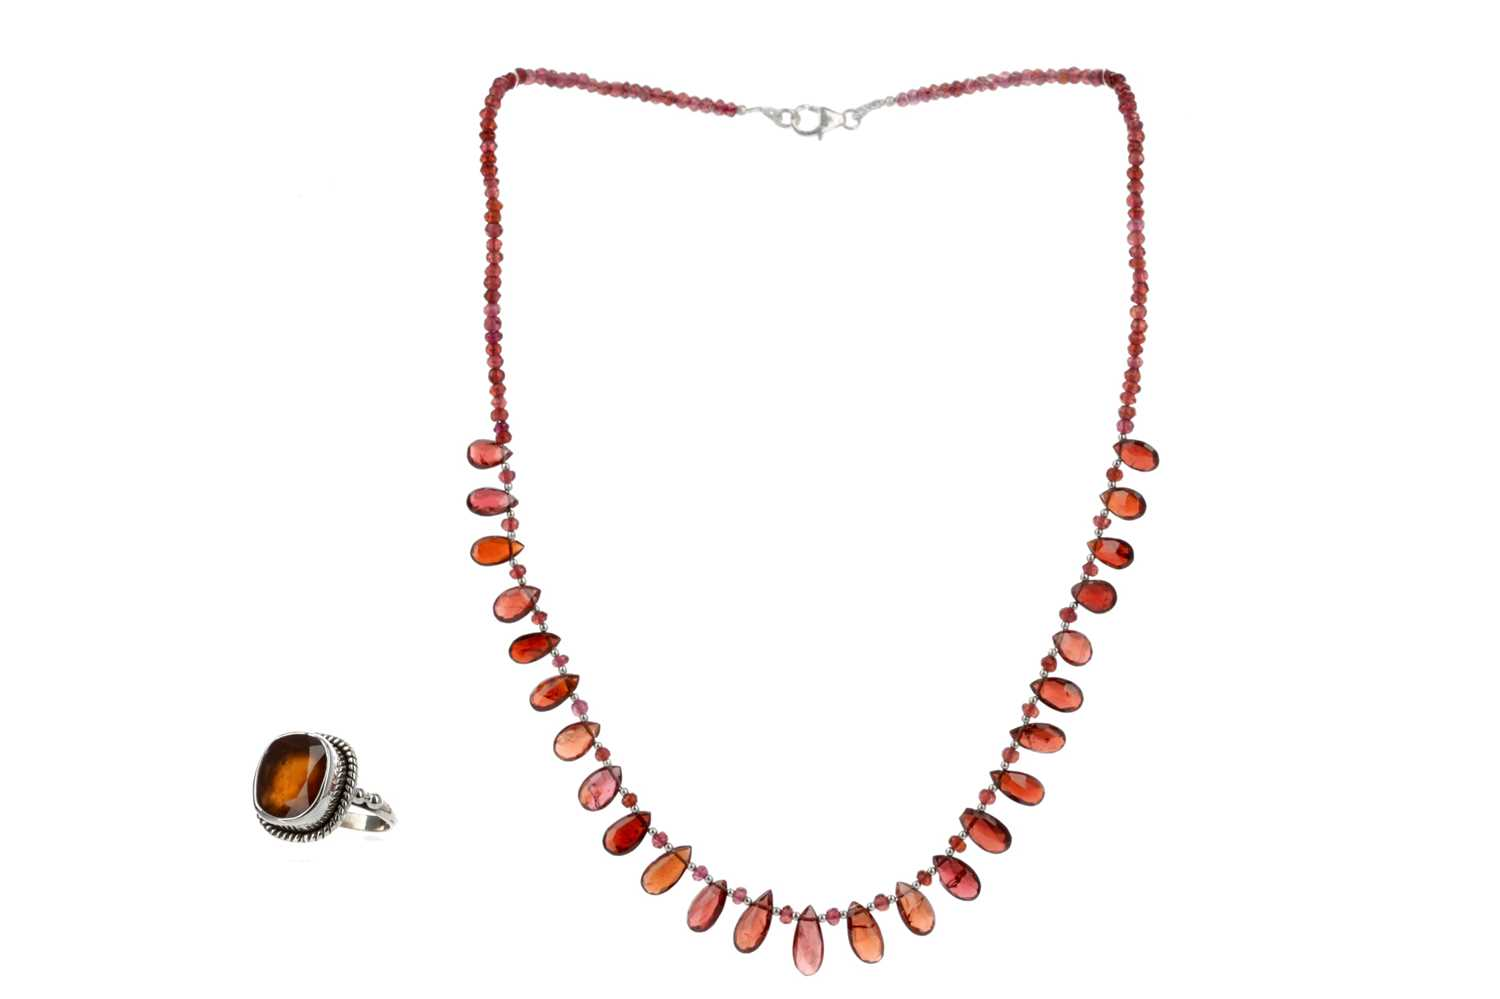 Lot 369 - A GARNET NECKLACE AND RING